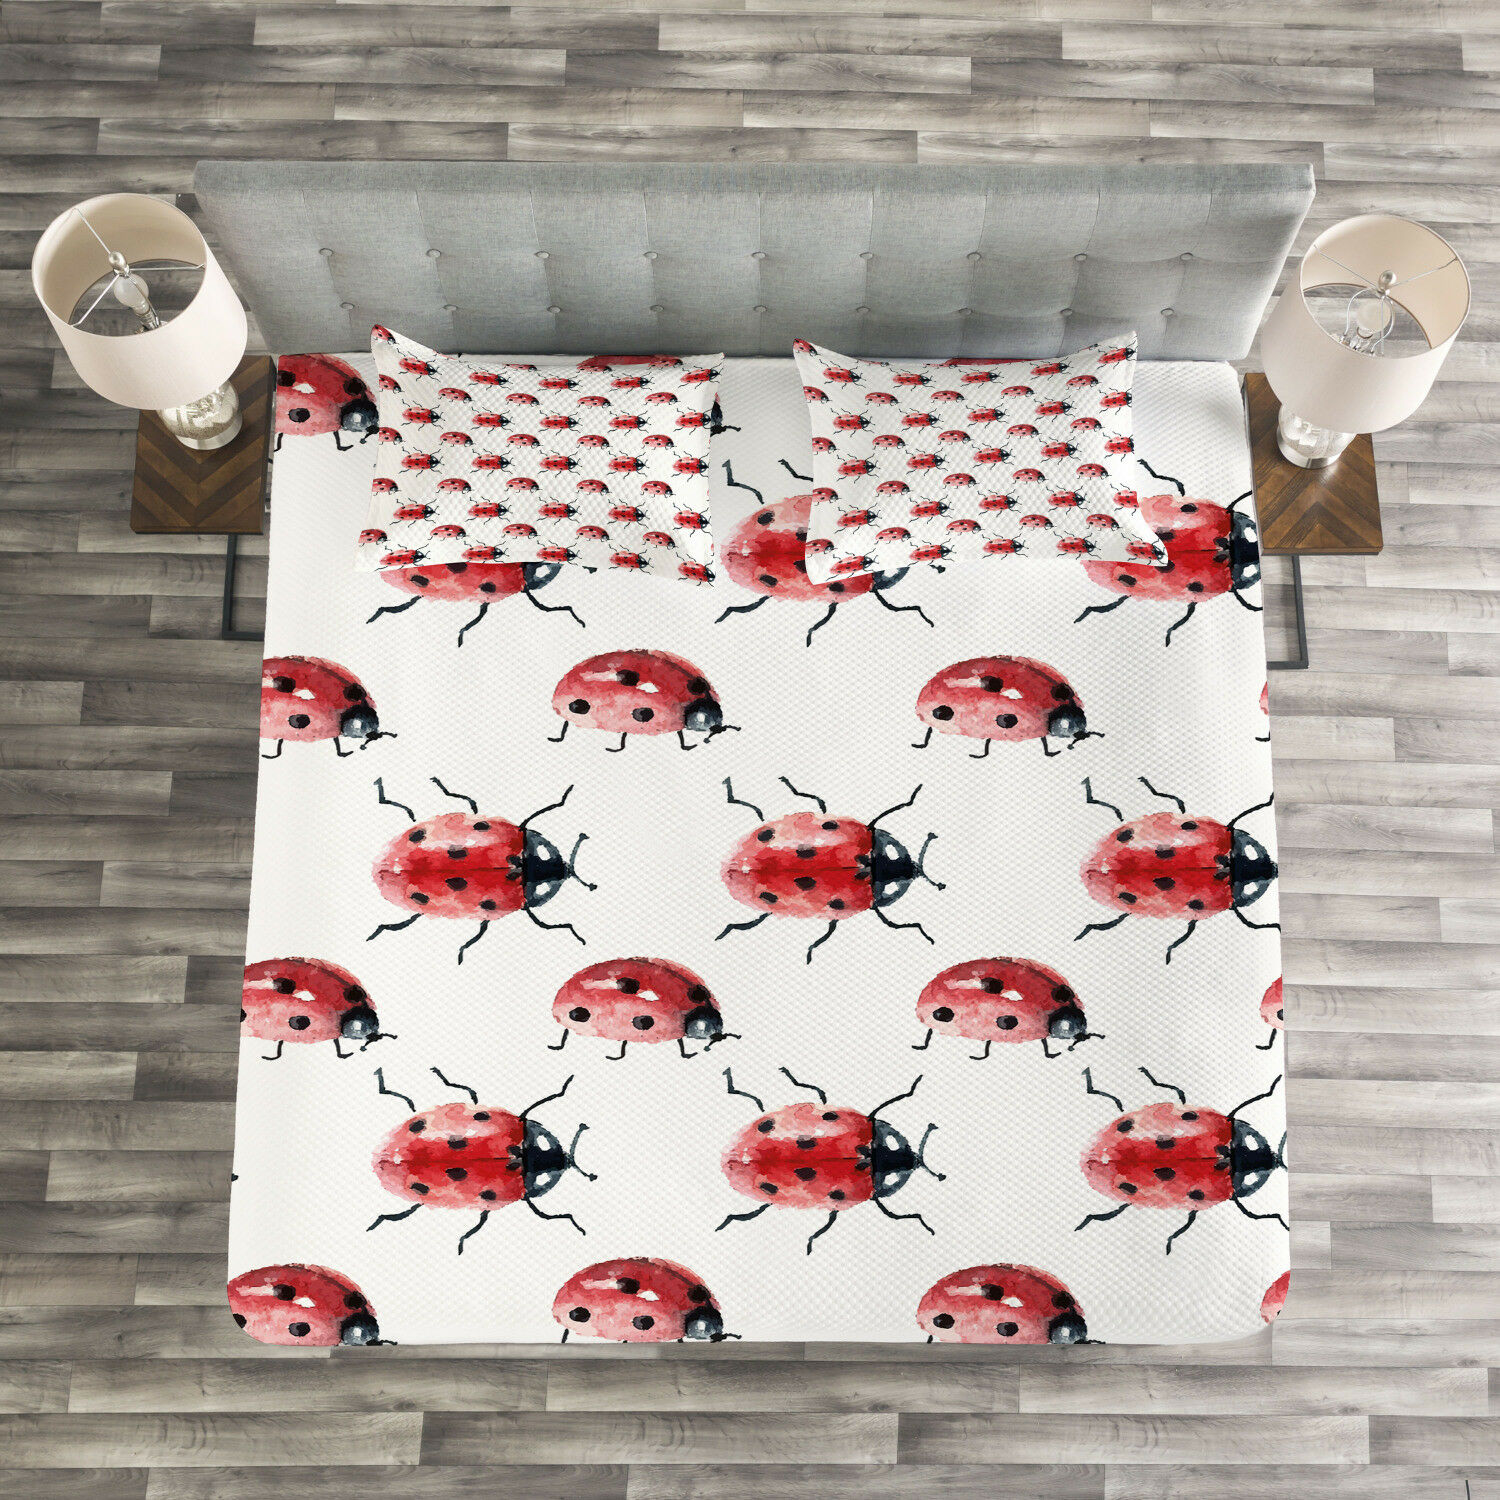 Watercolor Quilted Bedspread & Pillow Shams Set, Cute Lady Bug Insect Print